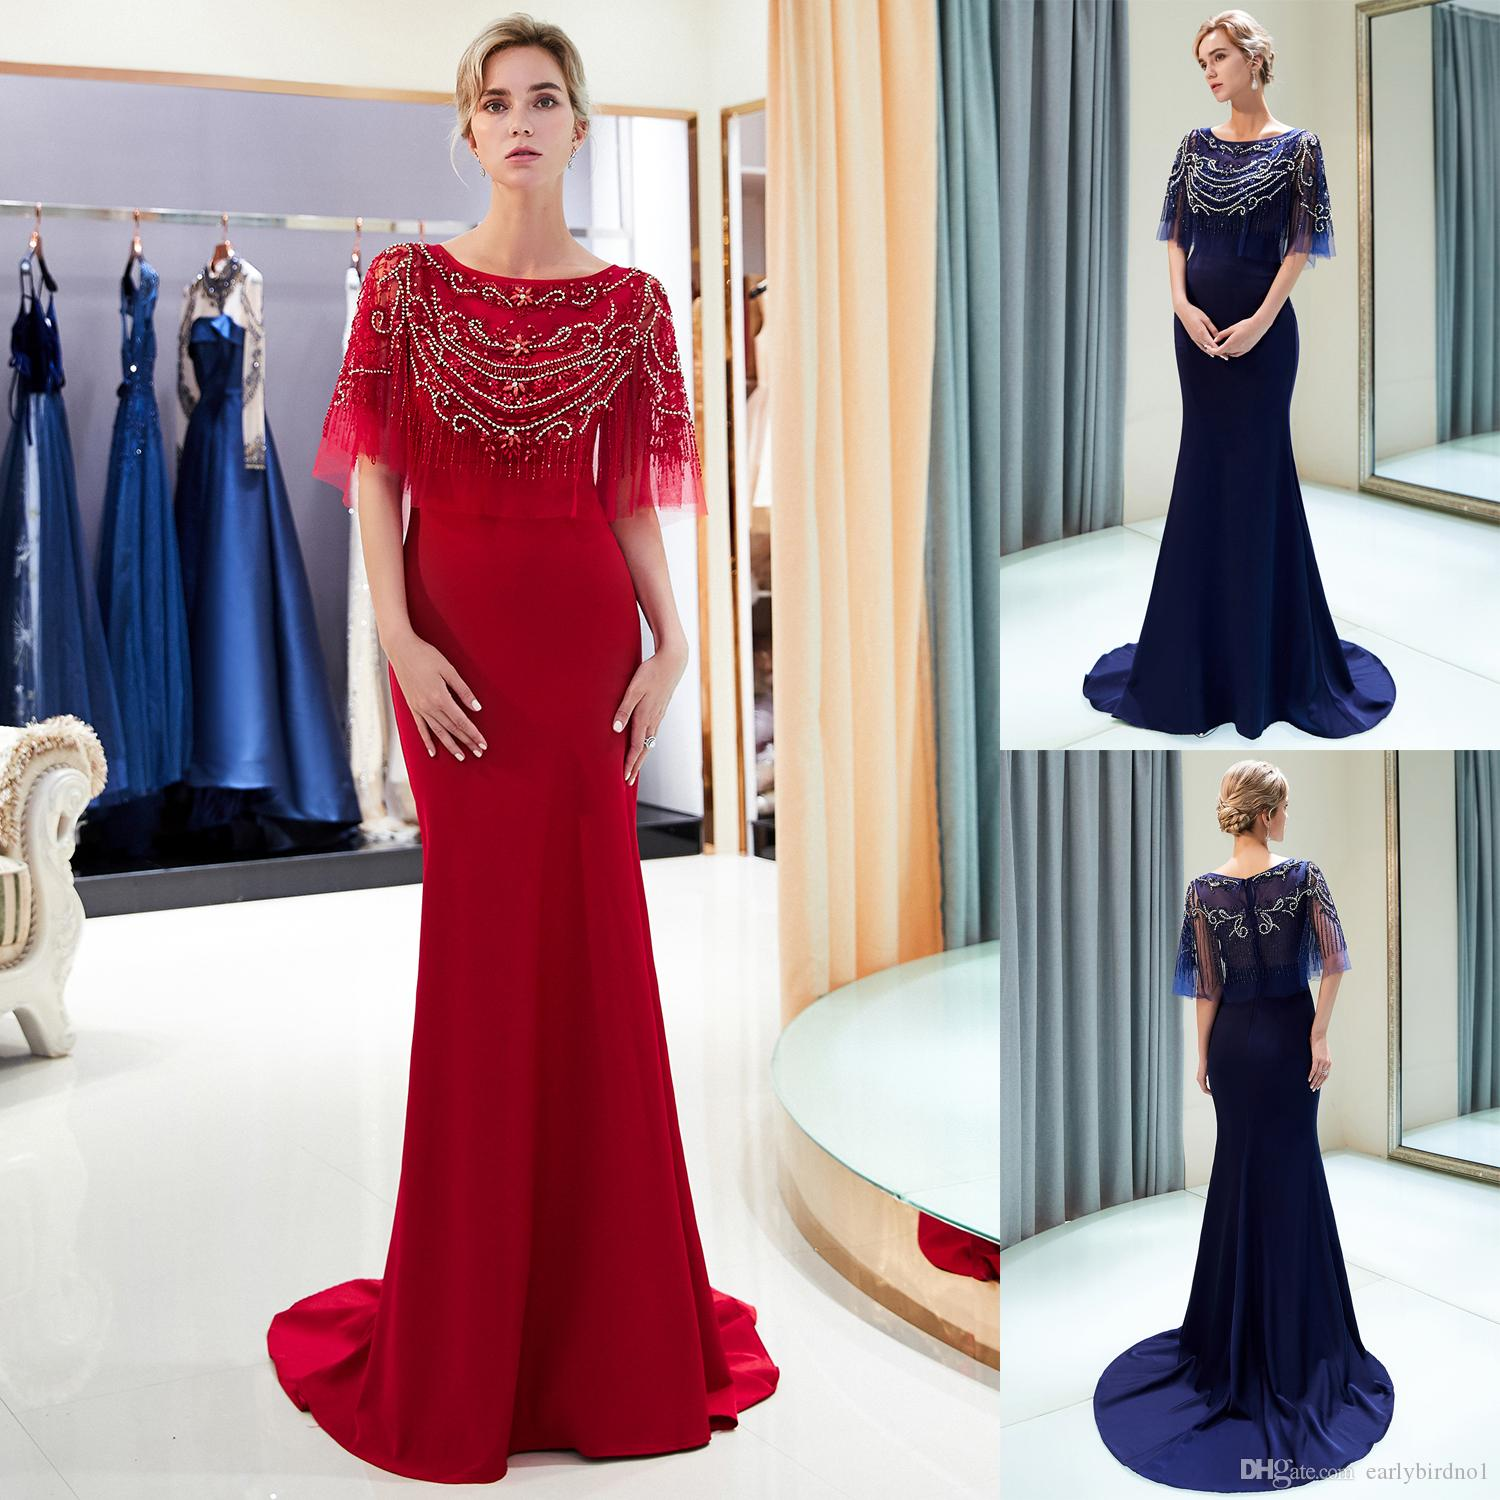 cba06f77f Luxury Beaded Mermaid Evening Dresses With Wrap Sweep Train Designer Formal  Occasion Dress Long Prom Gown Wedding Guest Dress CPS1159 Cheap Dresses  Cheap ...